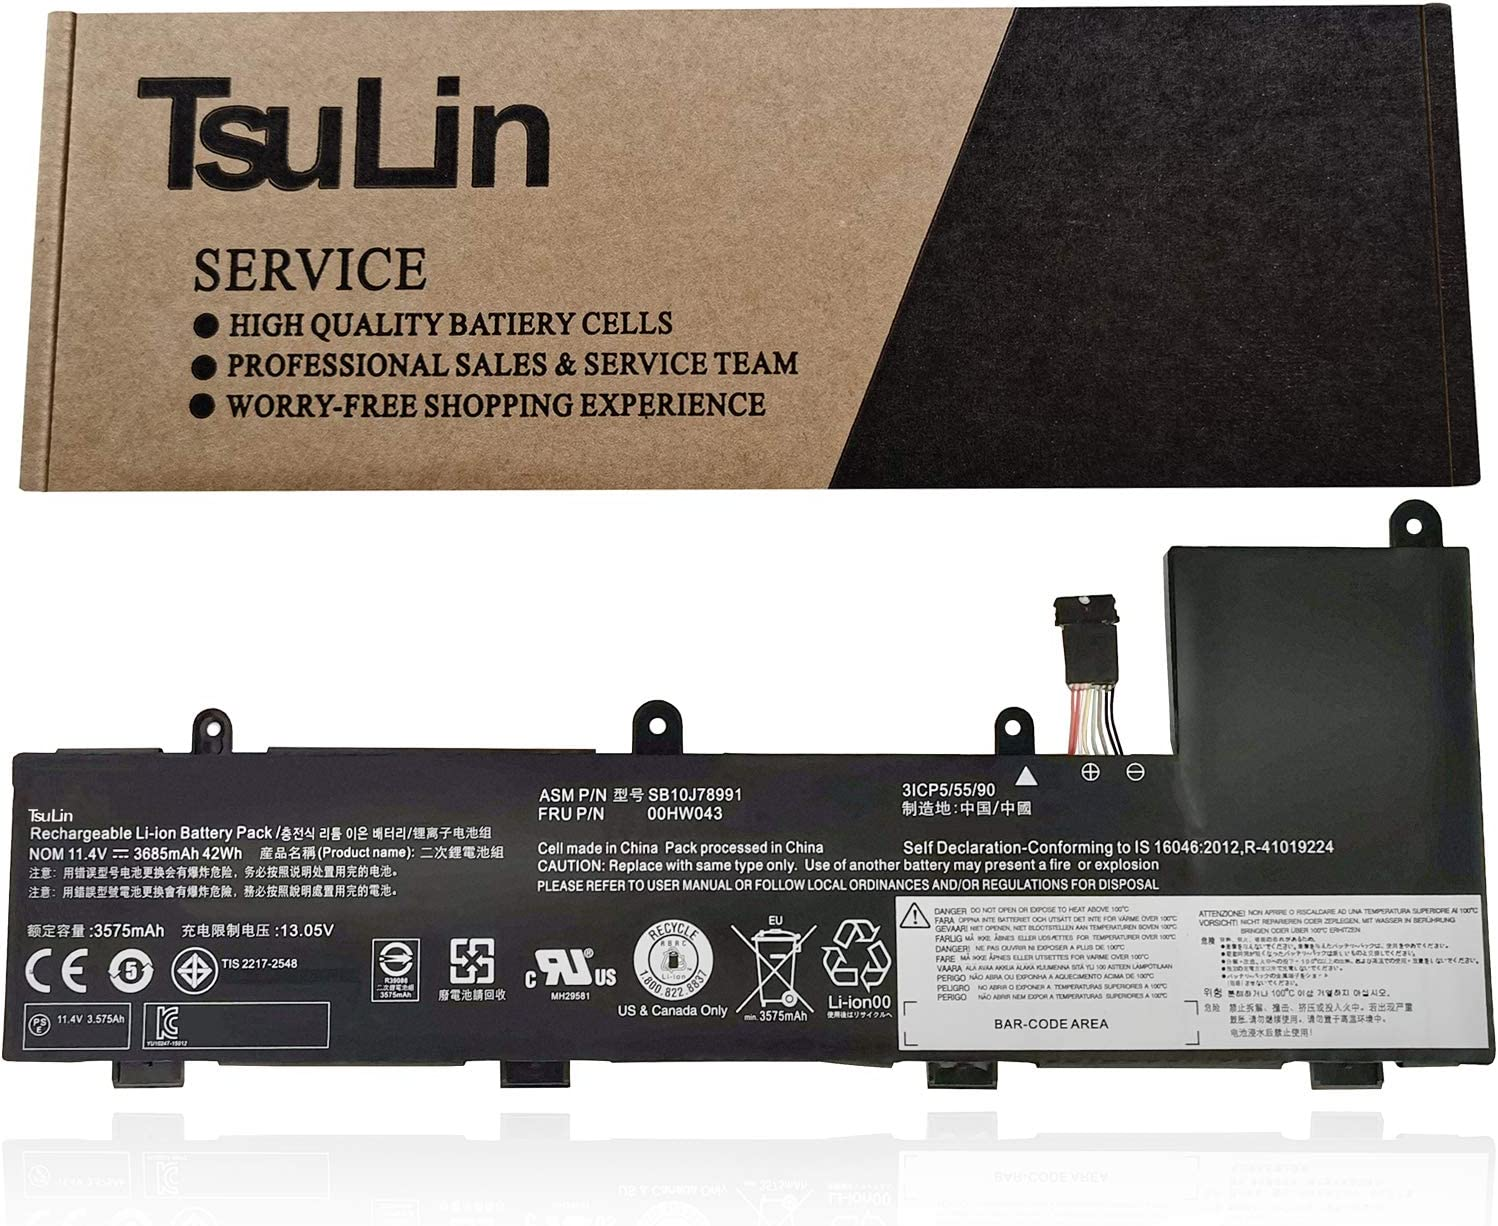 TsuLin 00HW043 Laptop Battery Compatible with Lenovo ThinkPad Yoga 11E 3rd Gen 11E Chromebook Series Notebook SB10J78991 00HW042 00HW044 SB10J78992 SB10J78990 11.4V 42Wh 3685mAh